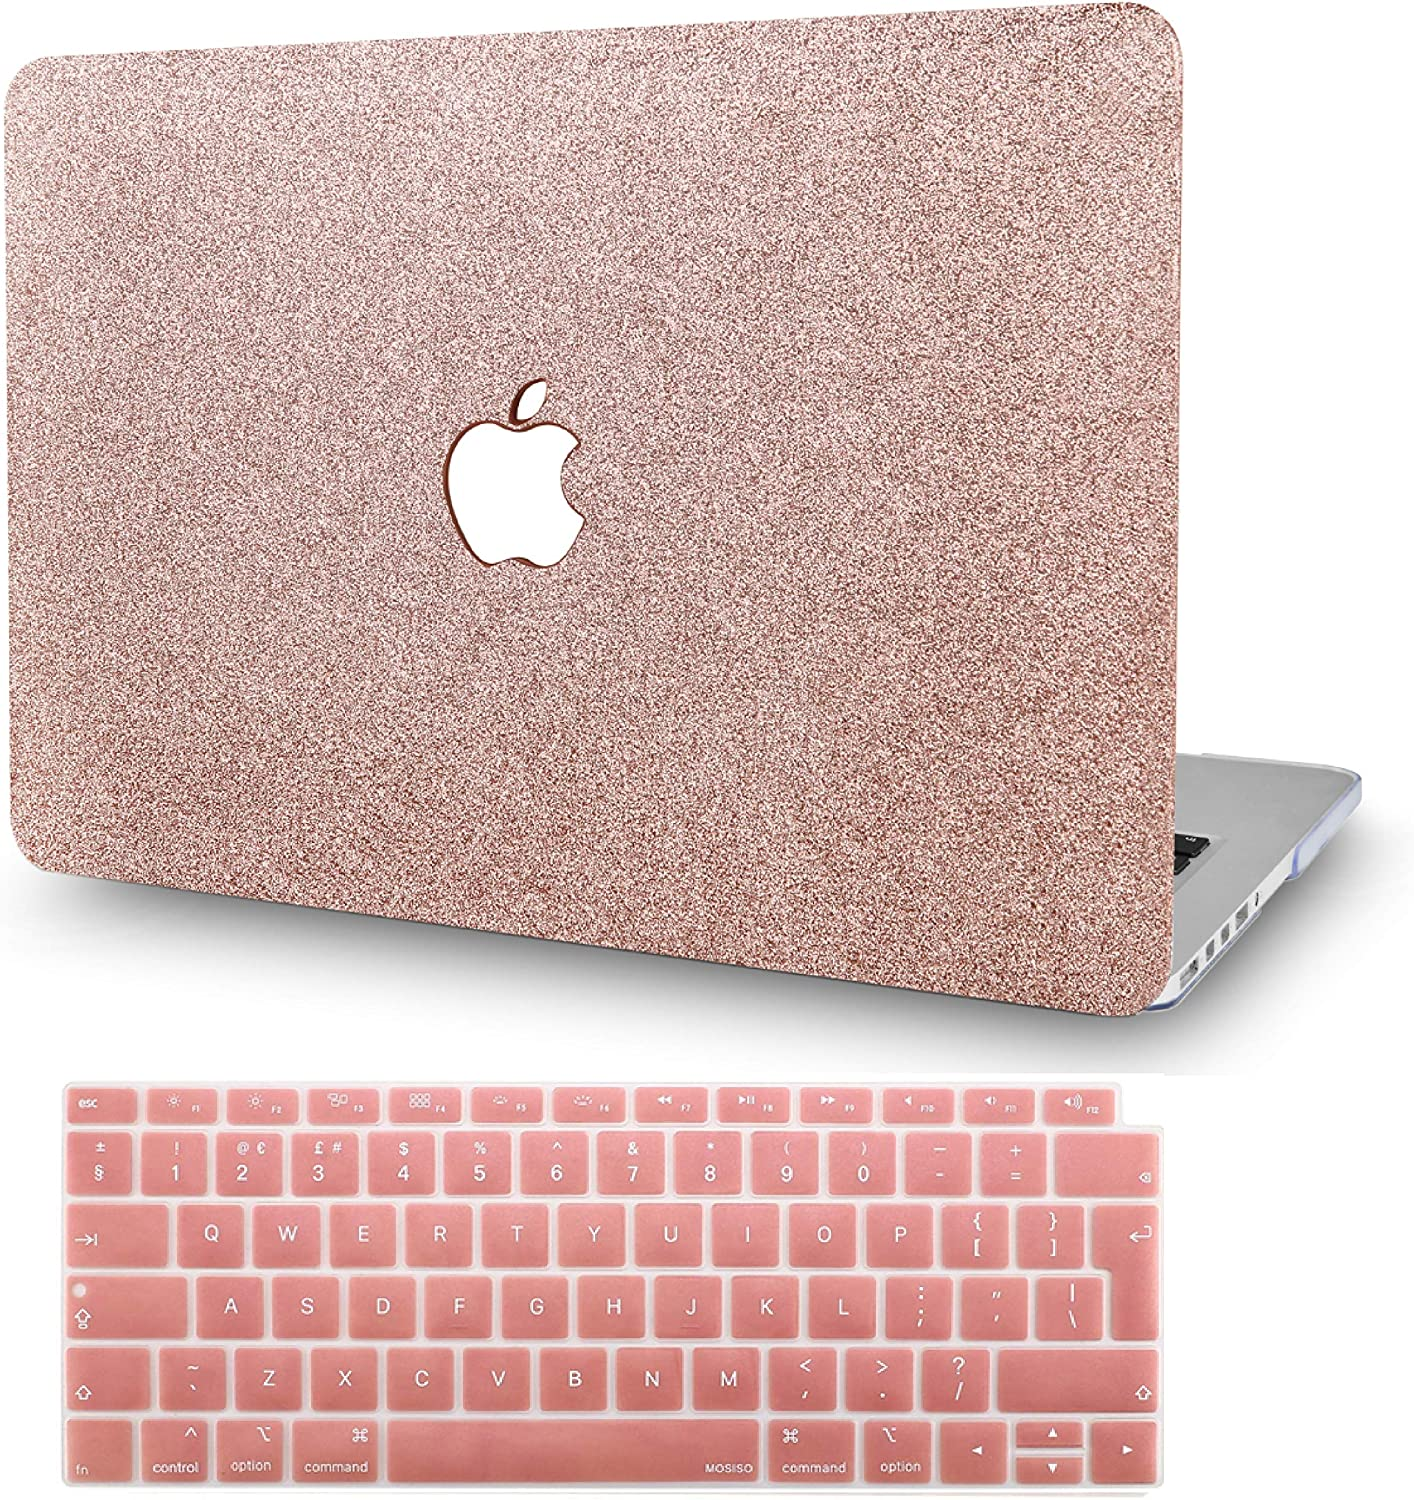 "KECC Laptop Case for MacBook Pro 13"" (2020/2019/2018/2017/2016) w/Keyboard Cover Plastic Hard Shell A2159/A1989/A1706/A1708 Touch Bar 2 in 1 Bundle (Rose Gold Sparkling)"